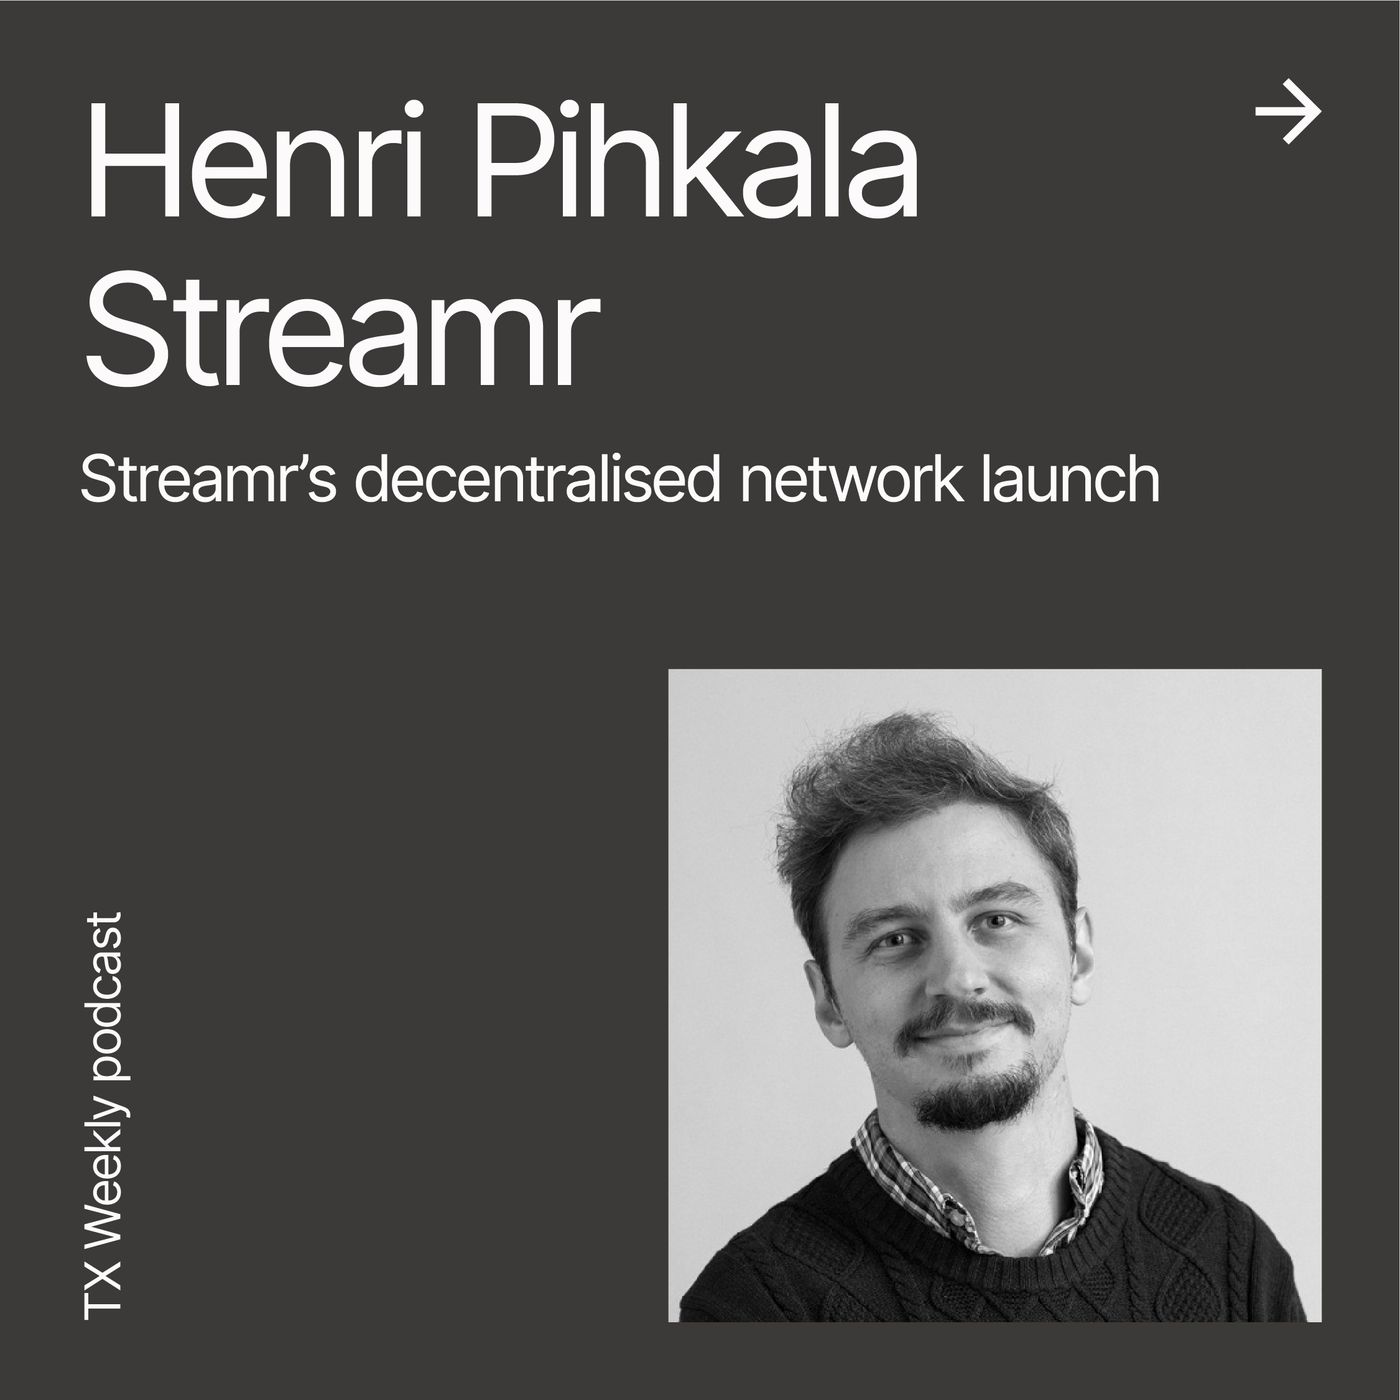 Streamr's decentralised network launch, with Co-founder Henri Pihkala